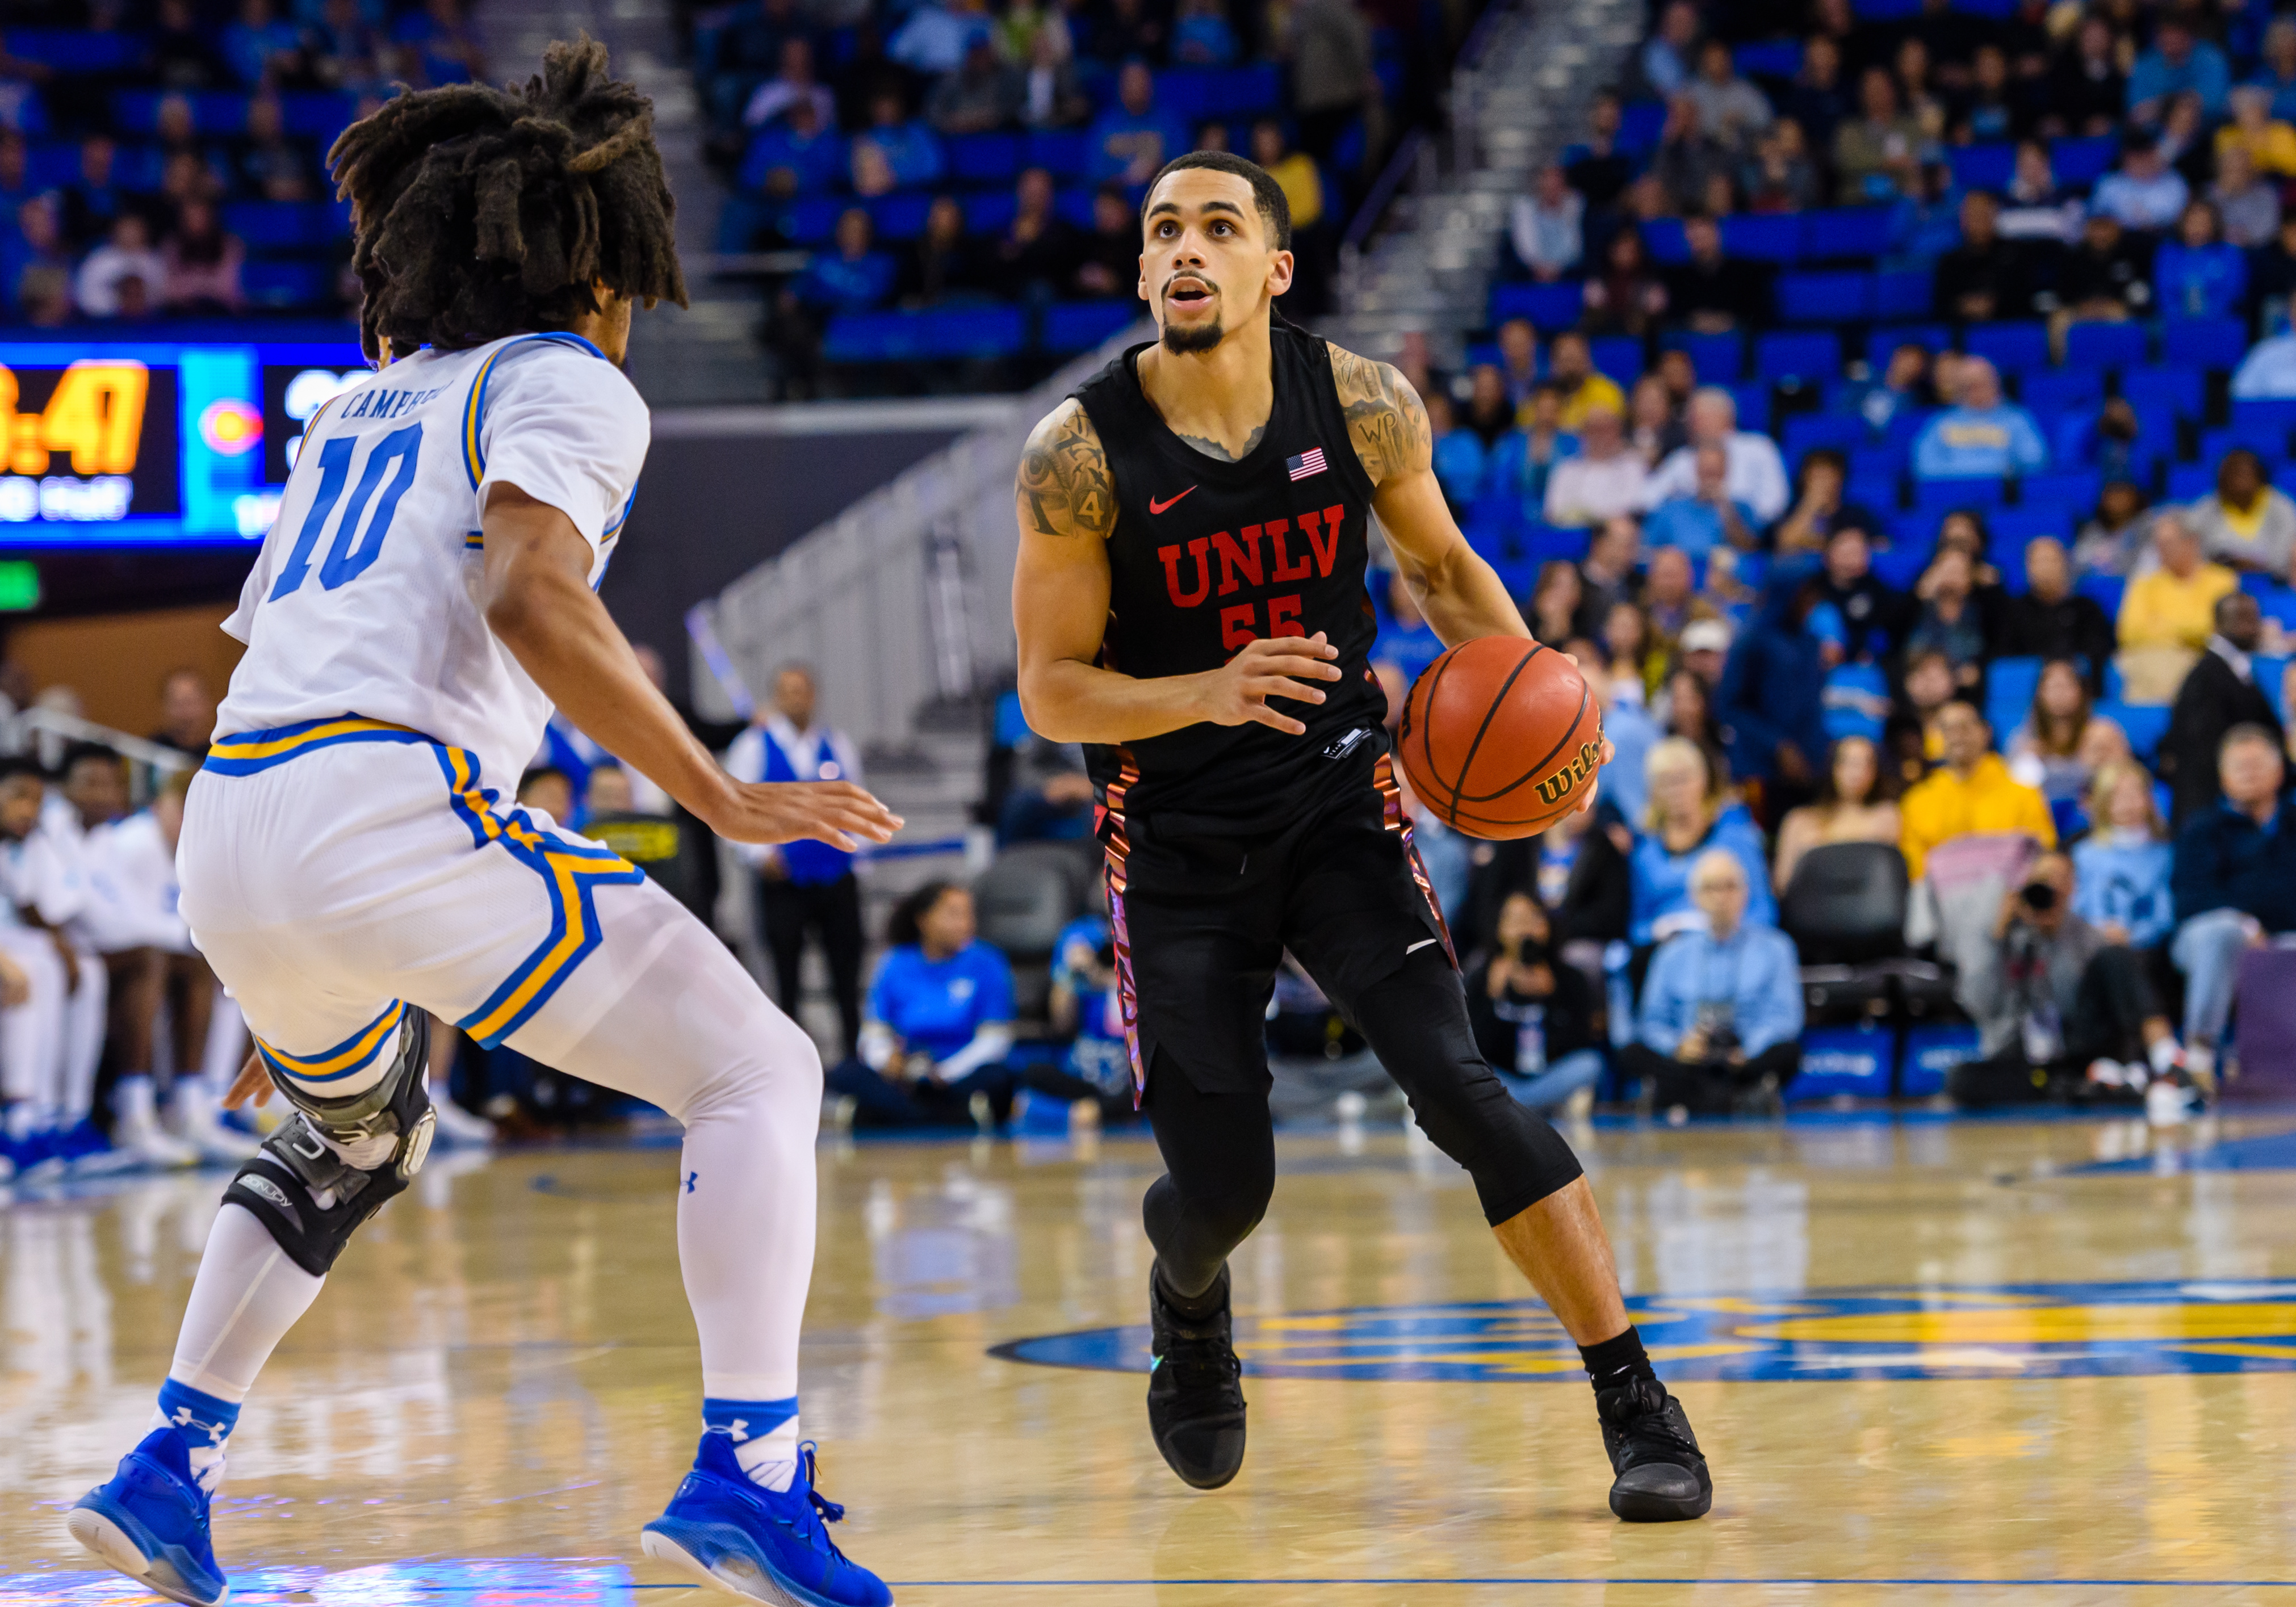 UNLV Rebels guard Elijah Mitrou-Long looks to the basket during a college basketball game between the UNLV Rebels and the UCLA Bruins on November 15, 2019, at Pauley Pavilion in Los Angeles, CA.